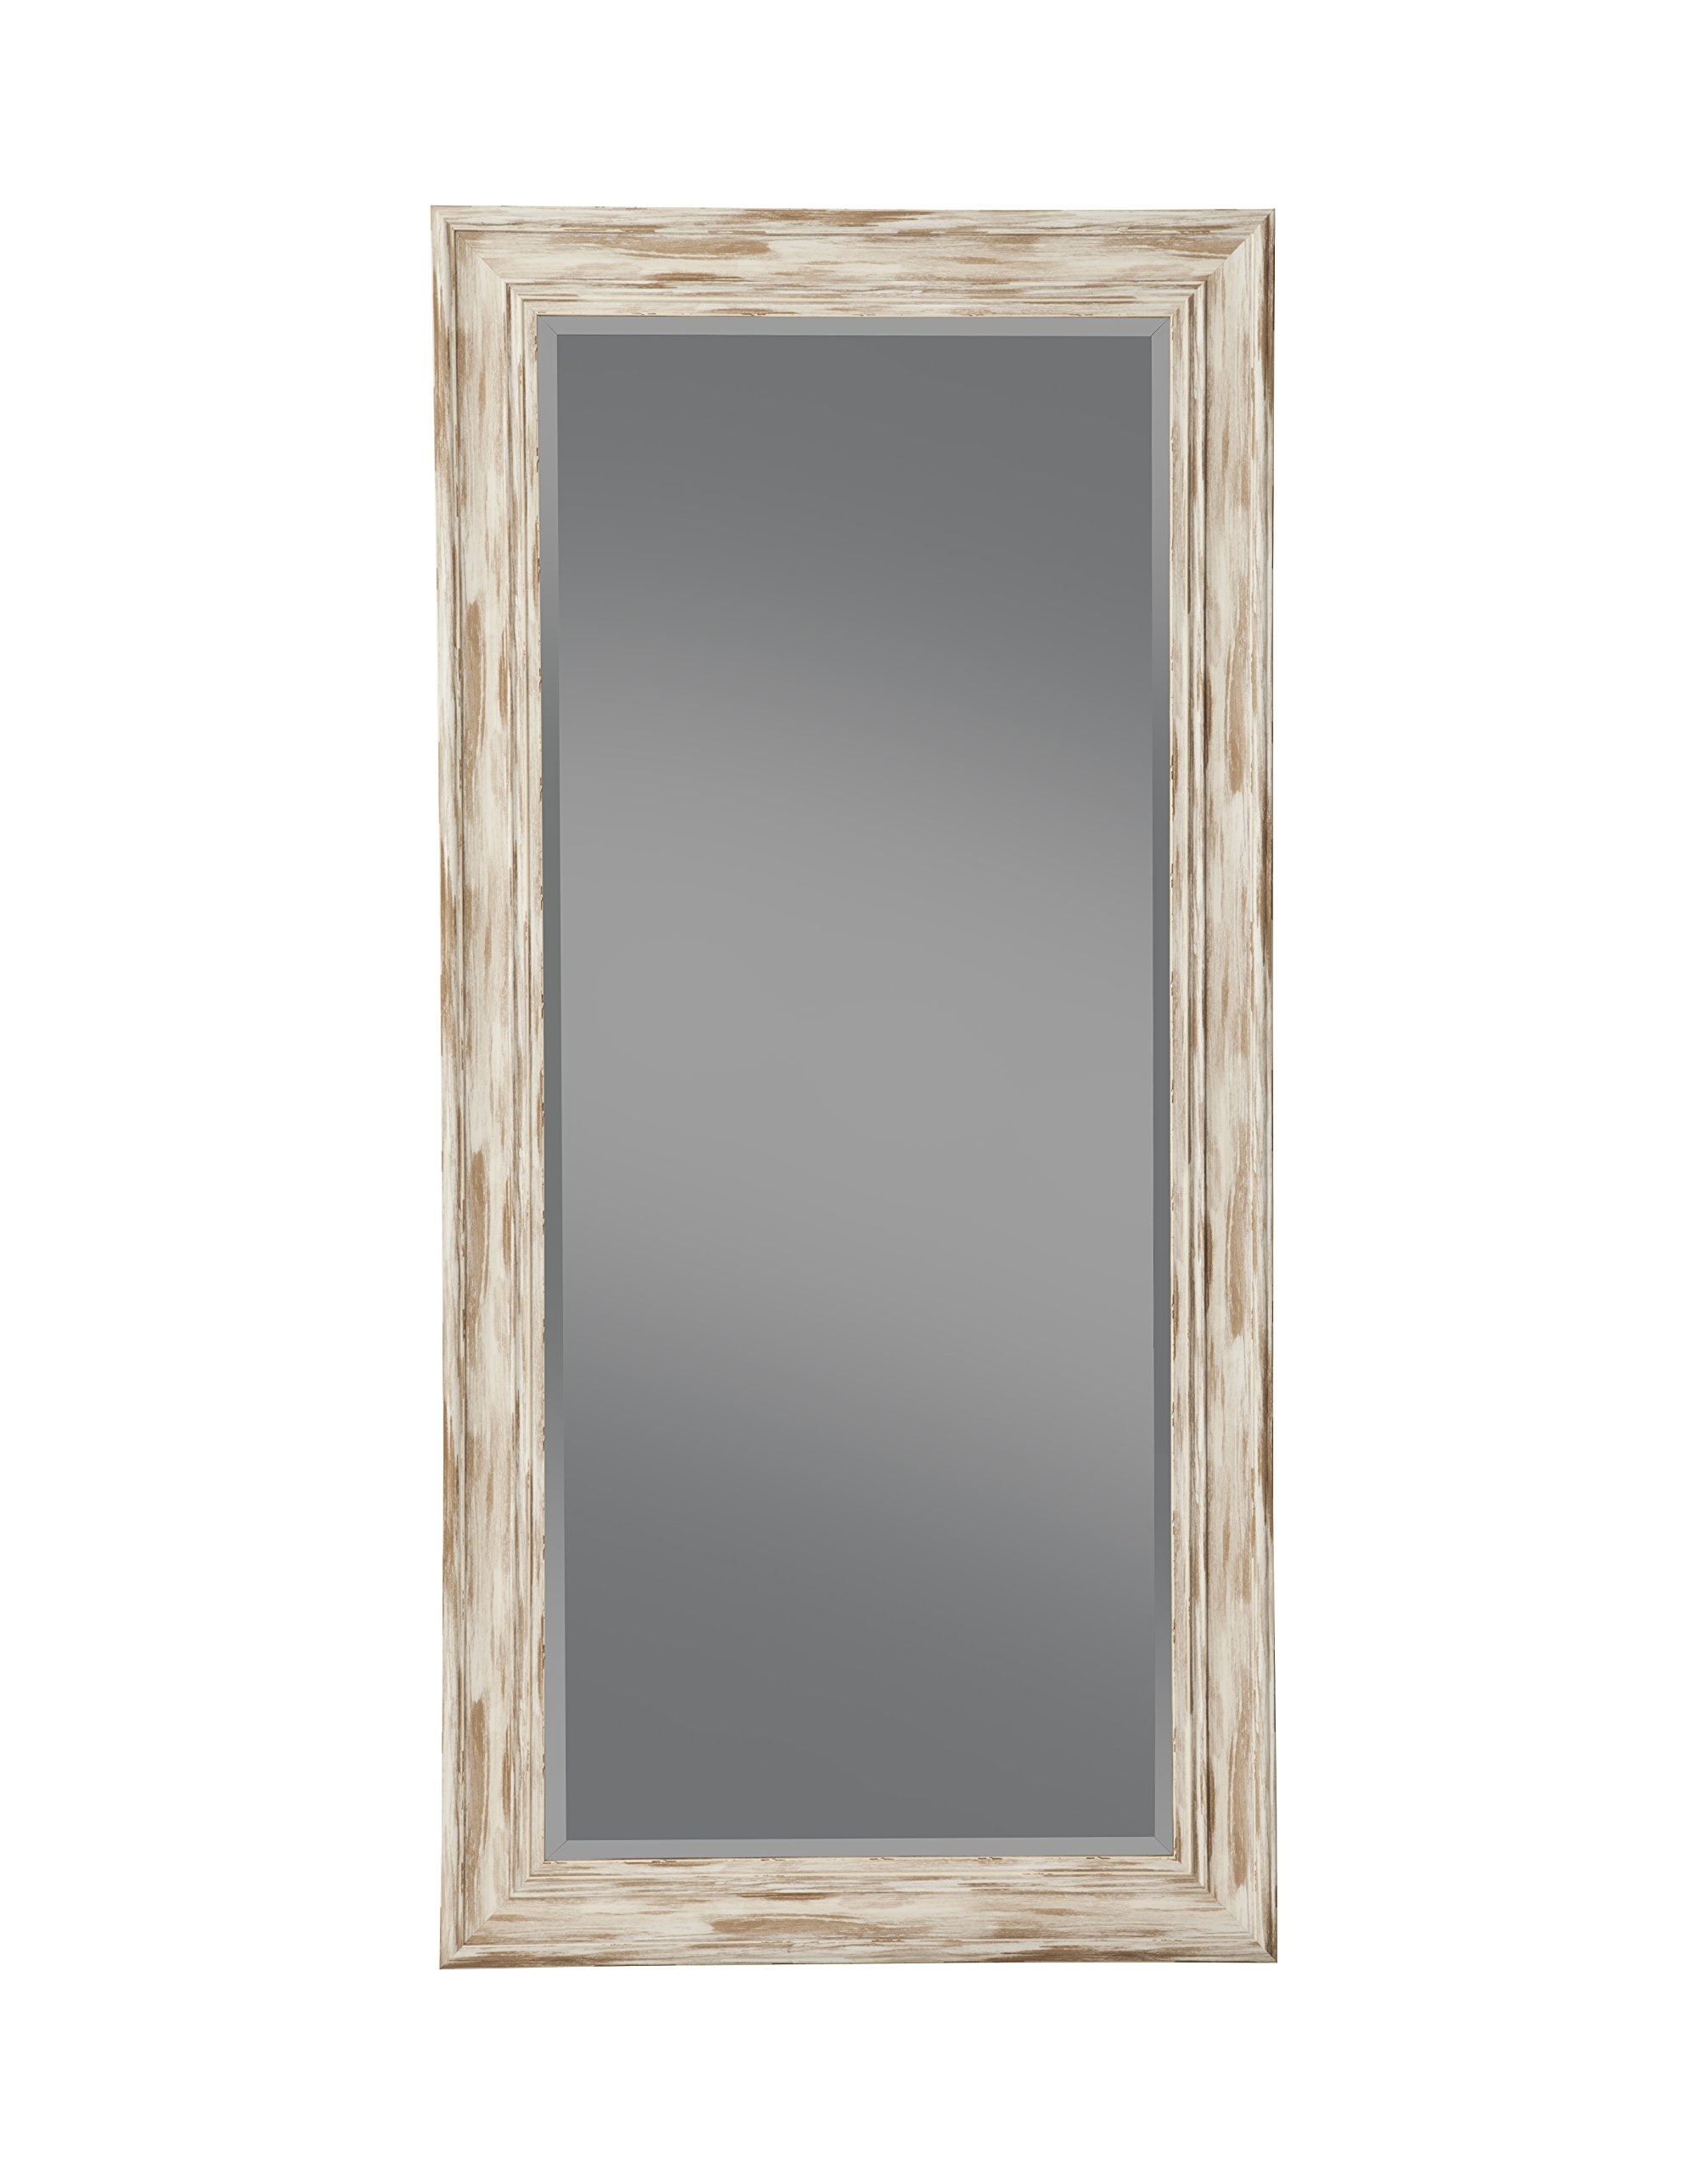 Sandberg Furniture Farmhouse, Full Length Leaner Mirror, Antique White Wash